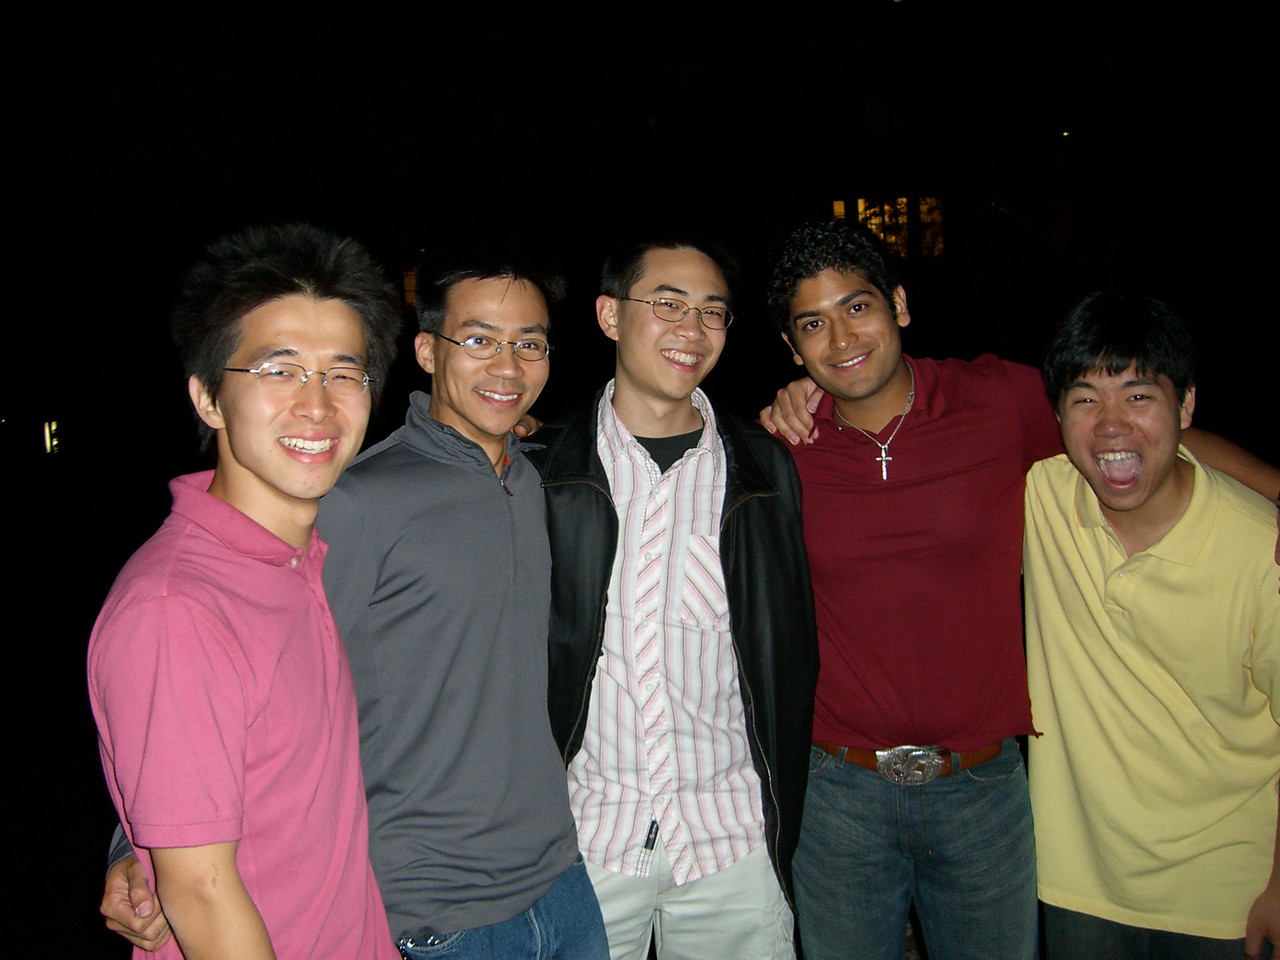 2006 05 19 Fri - Tenors after Spring Show 3 - with Poon